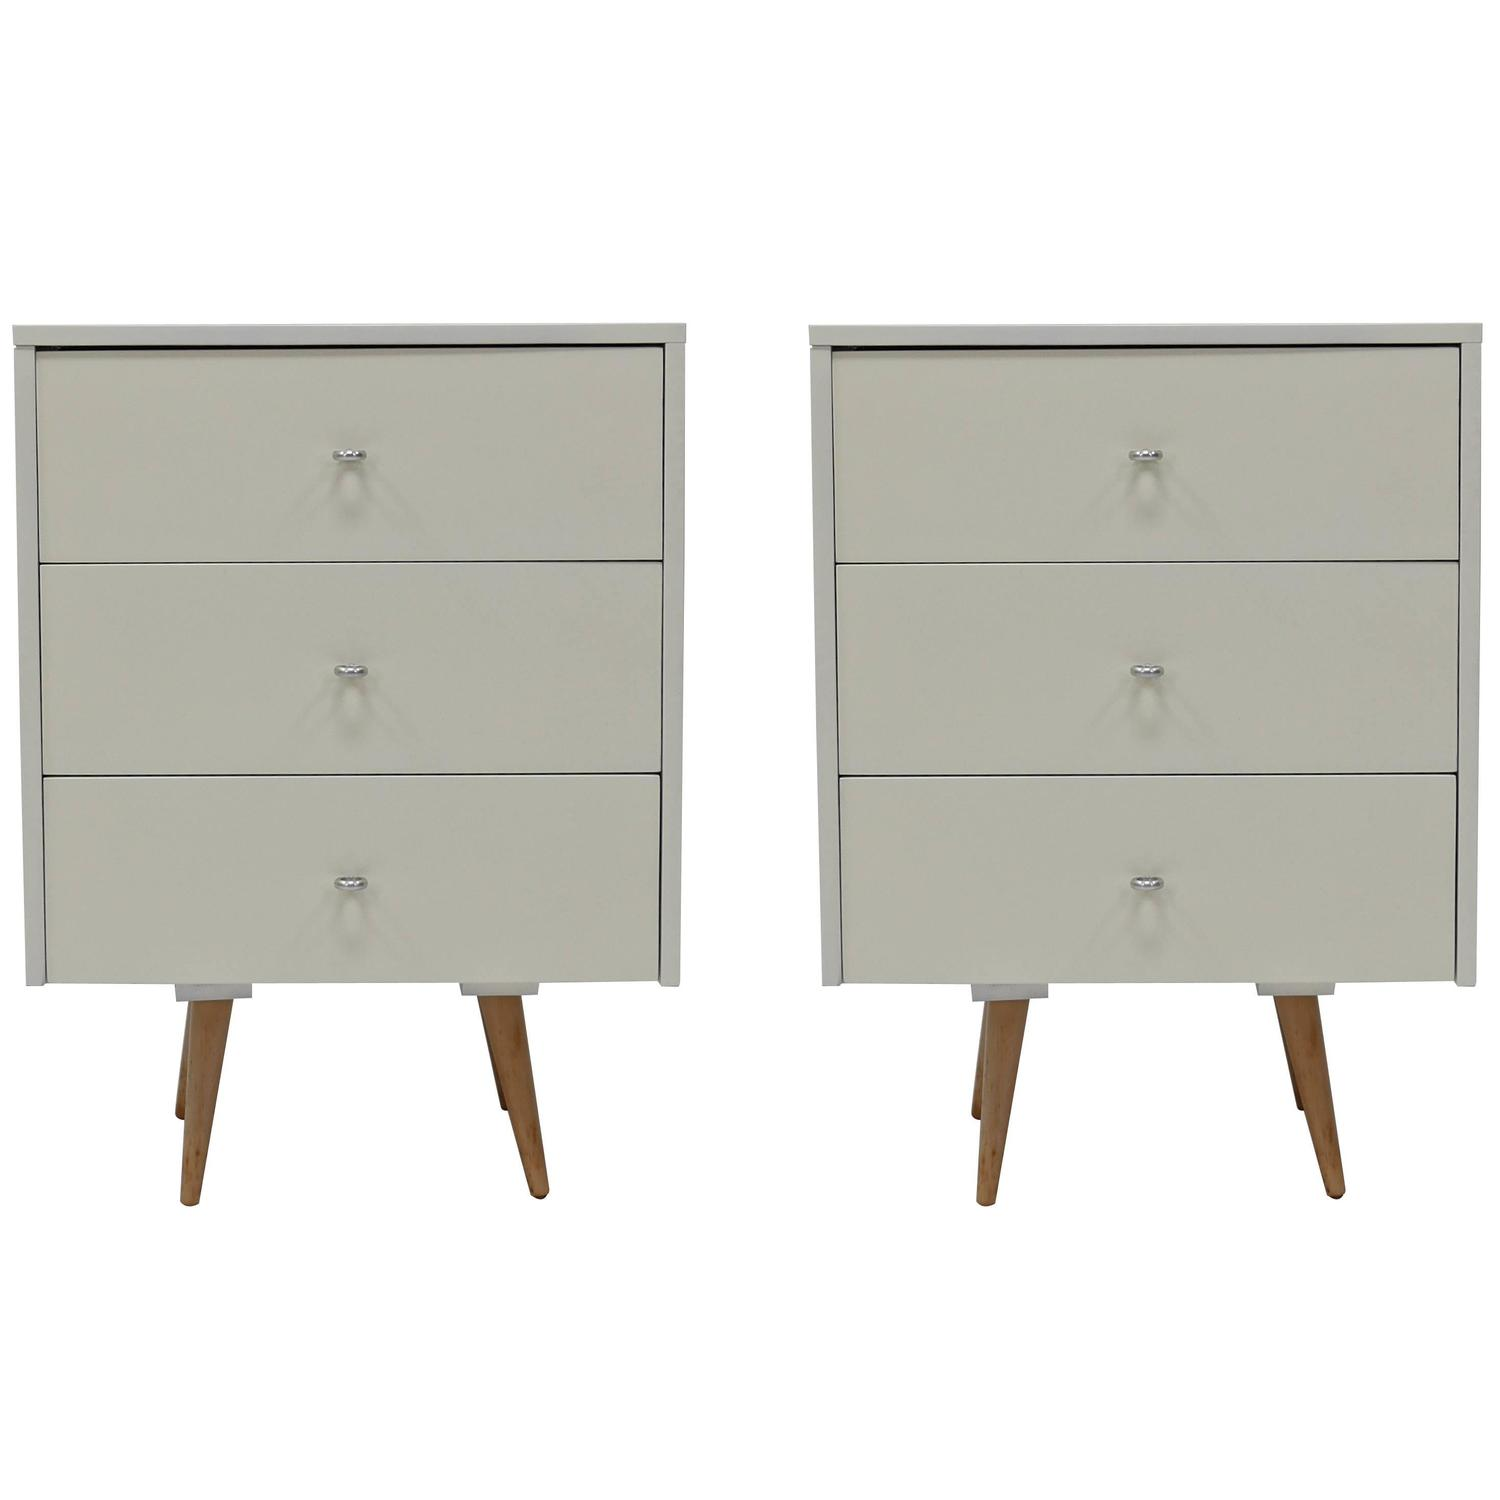 pair of nightstands in white lacquer by paul mccobb for sale at 1stdibs. Black Bedroom Furniture Sets. Home Design Ideas